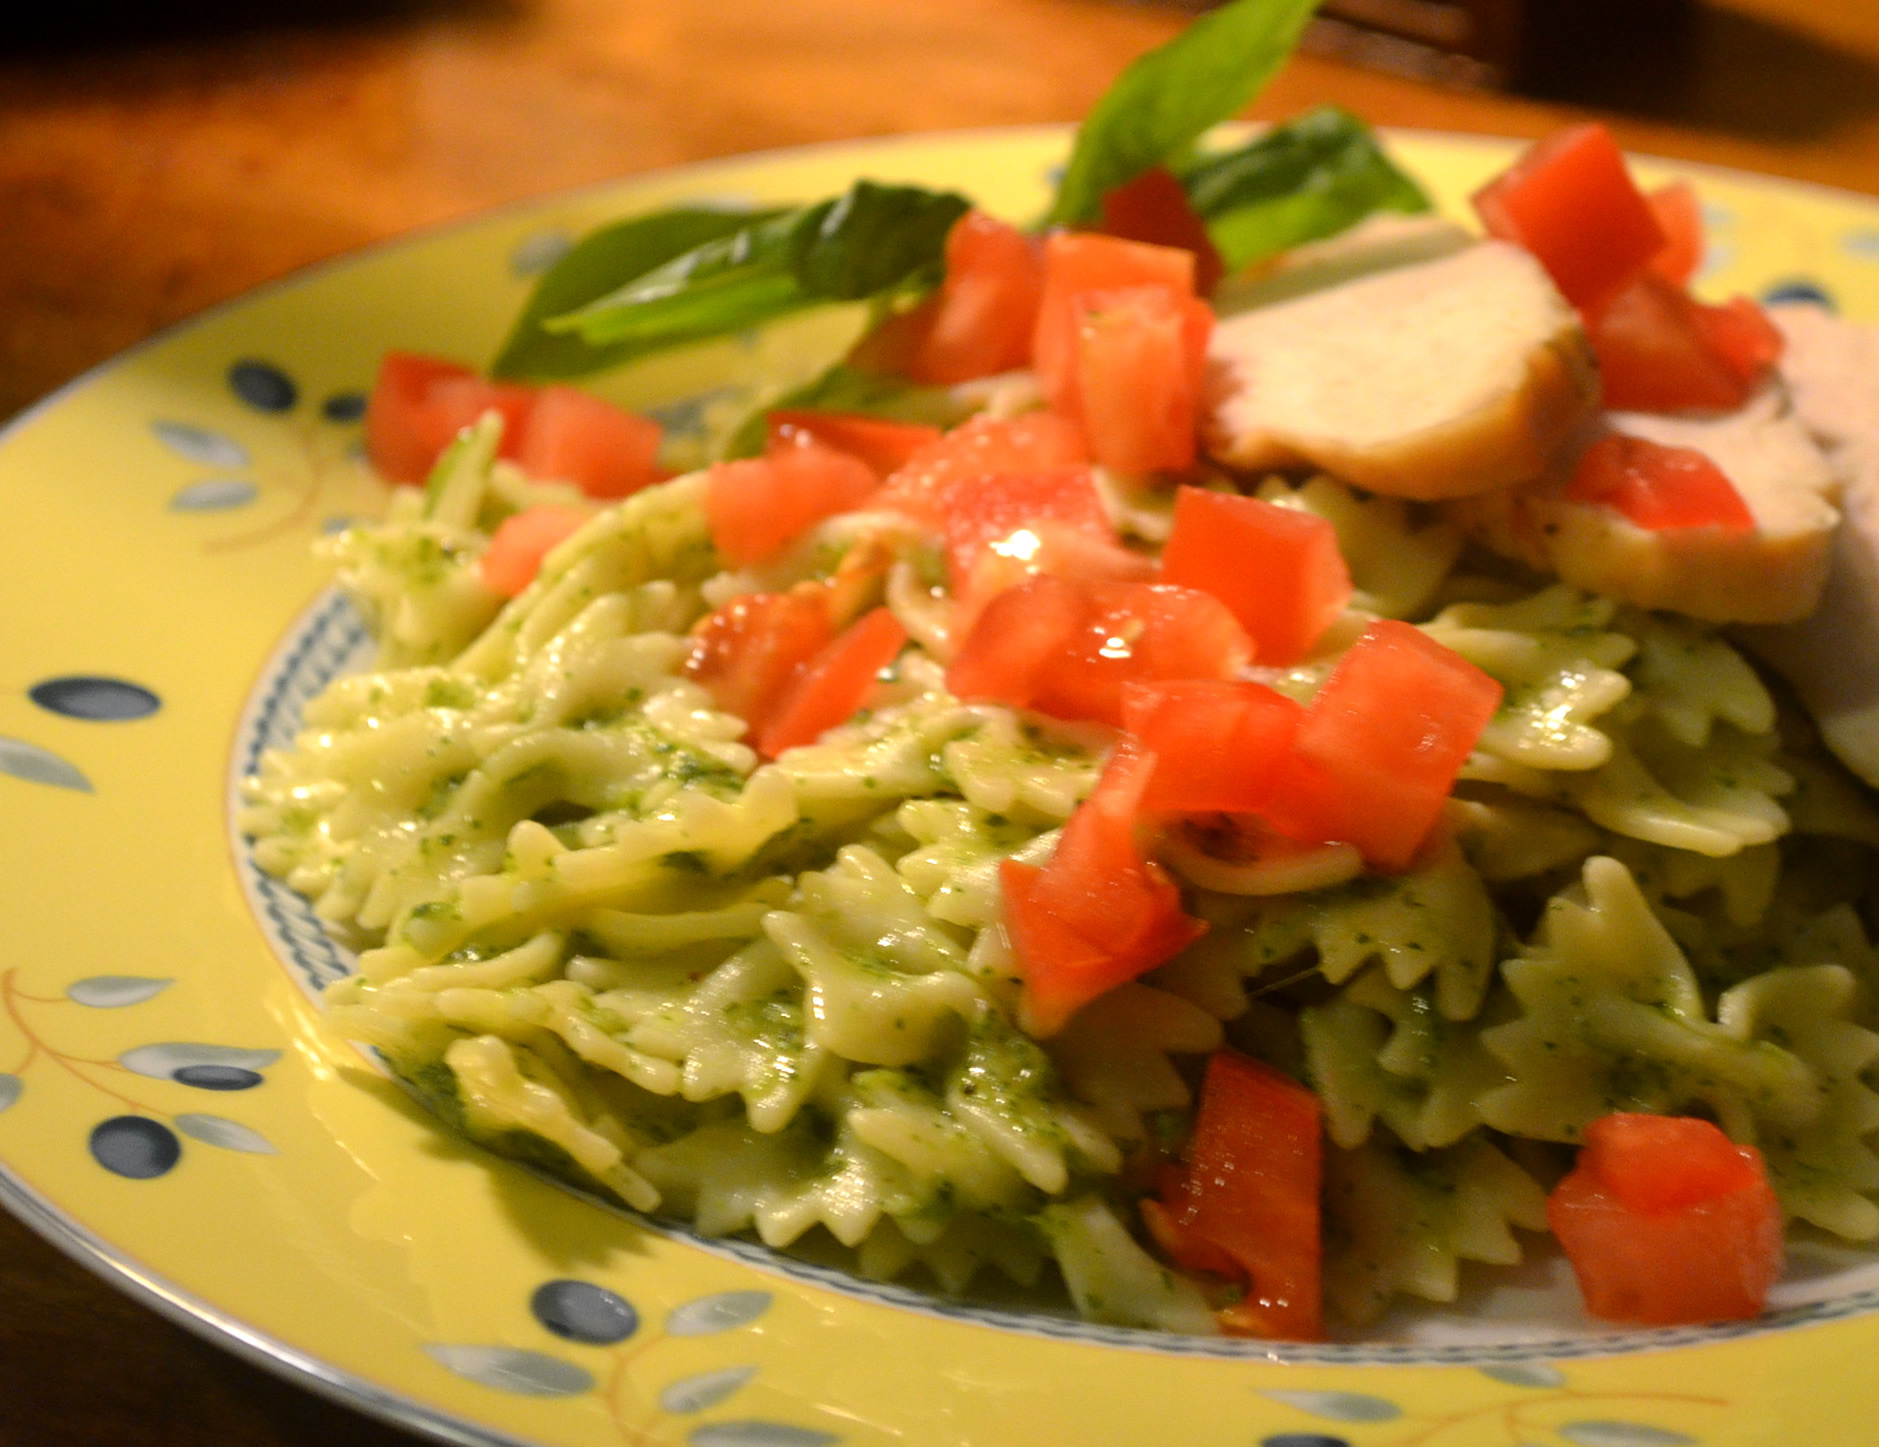 plated-pesto-pasta-with-chicken-with-basil-garnish05